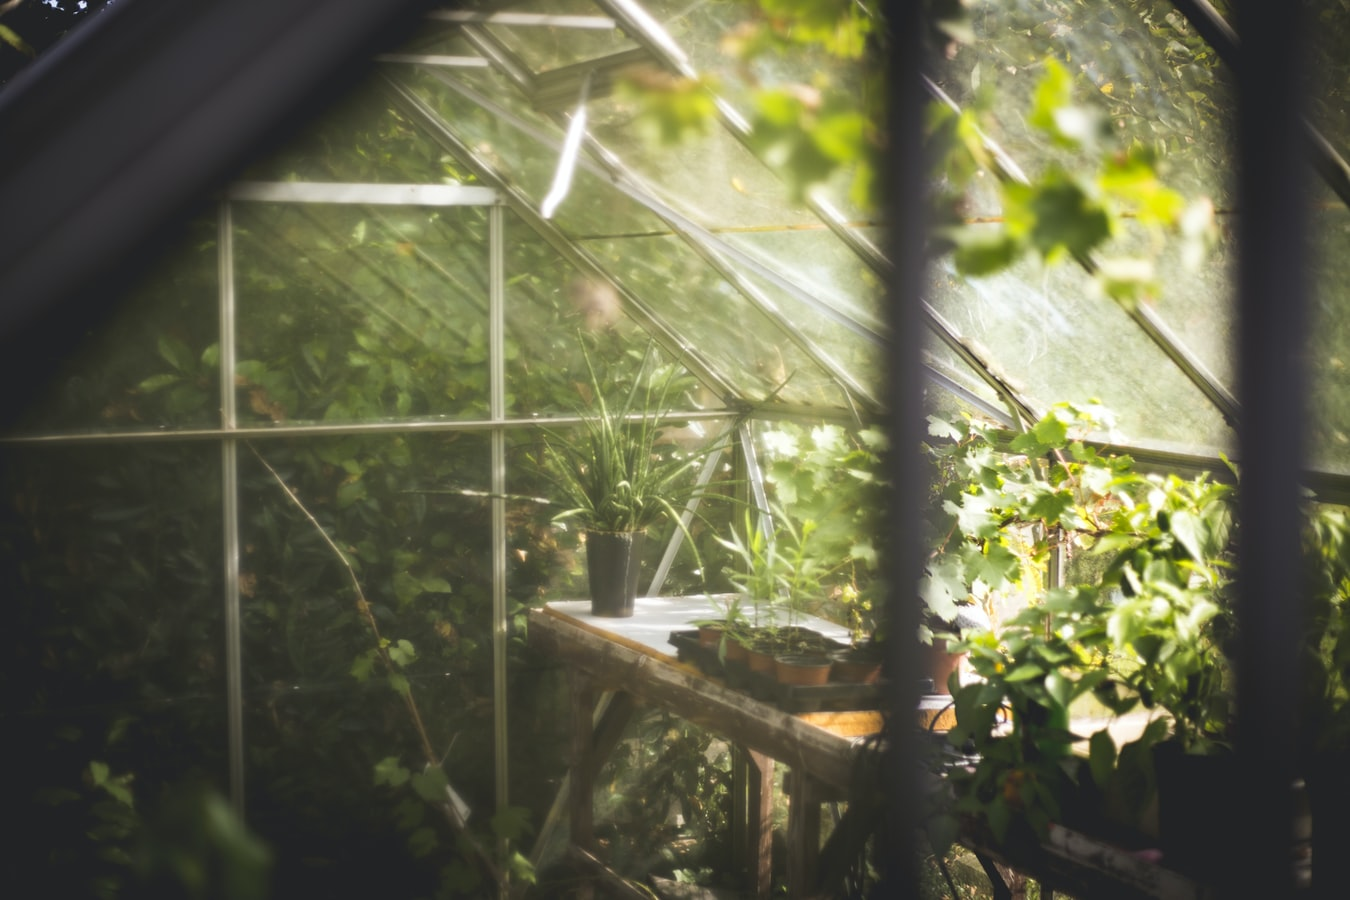 Greenhouse Construction: How to Prep for Spring Planting